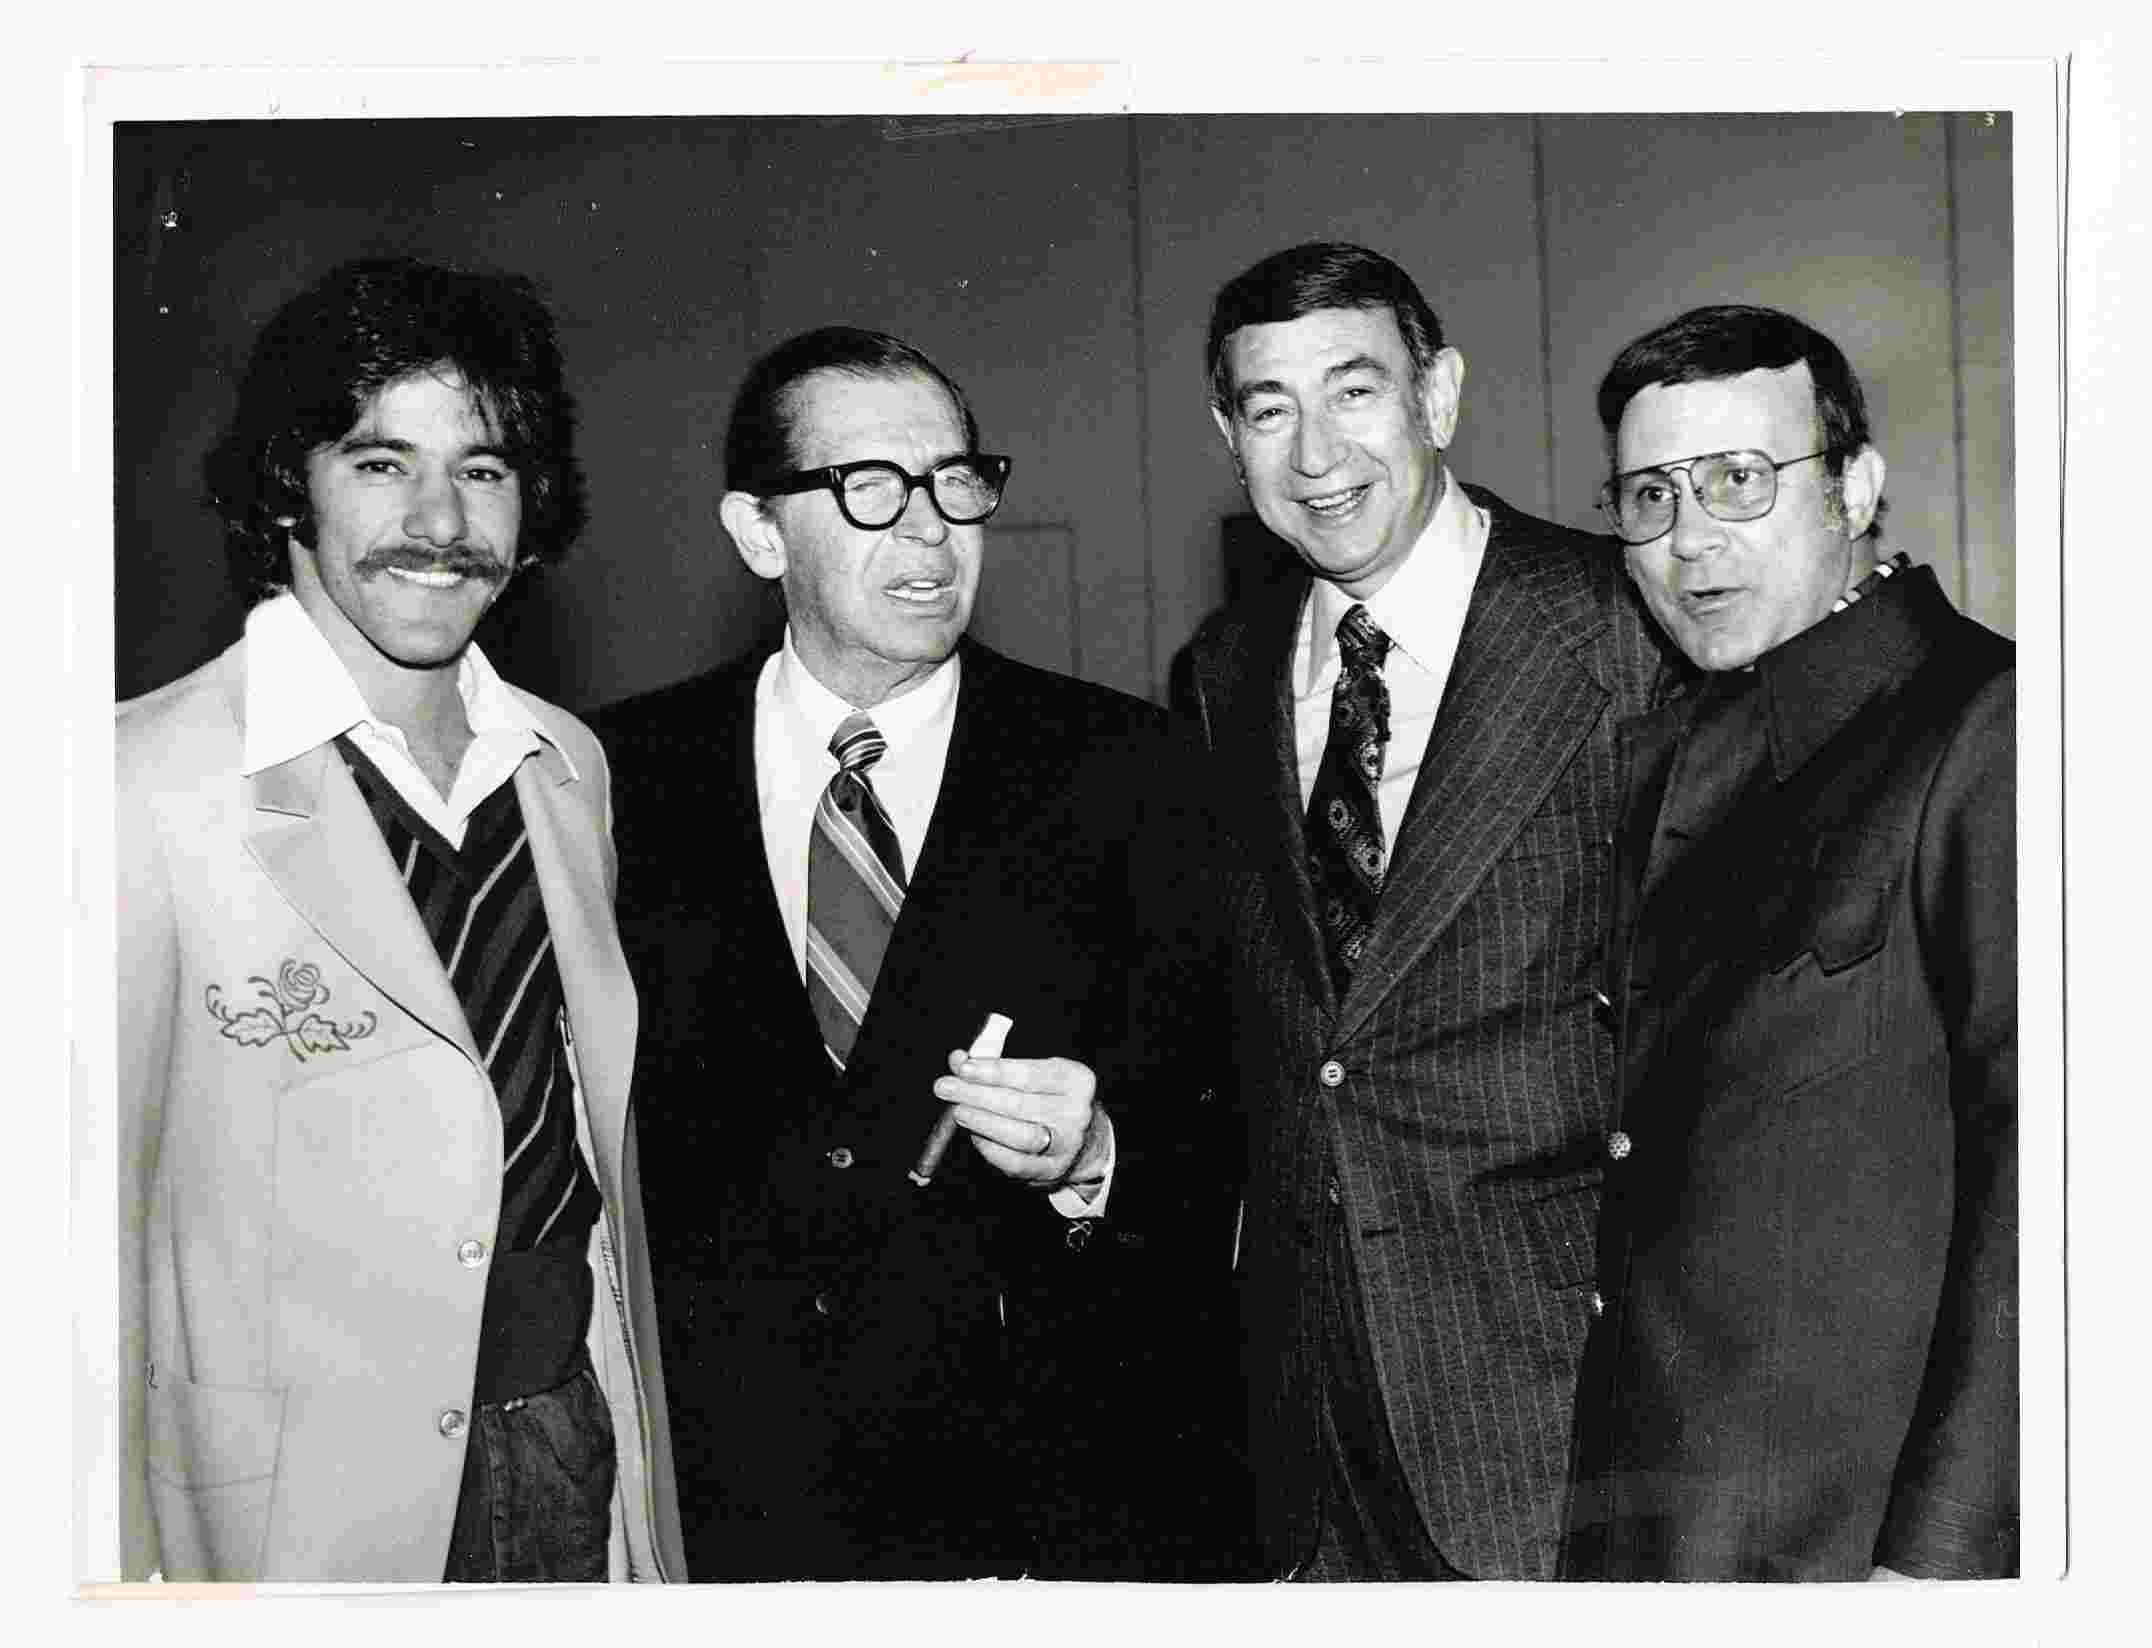 Geraldo with Walter Kronkite and others